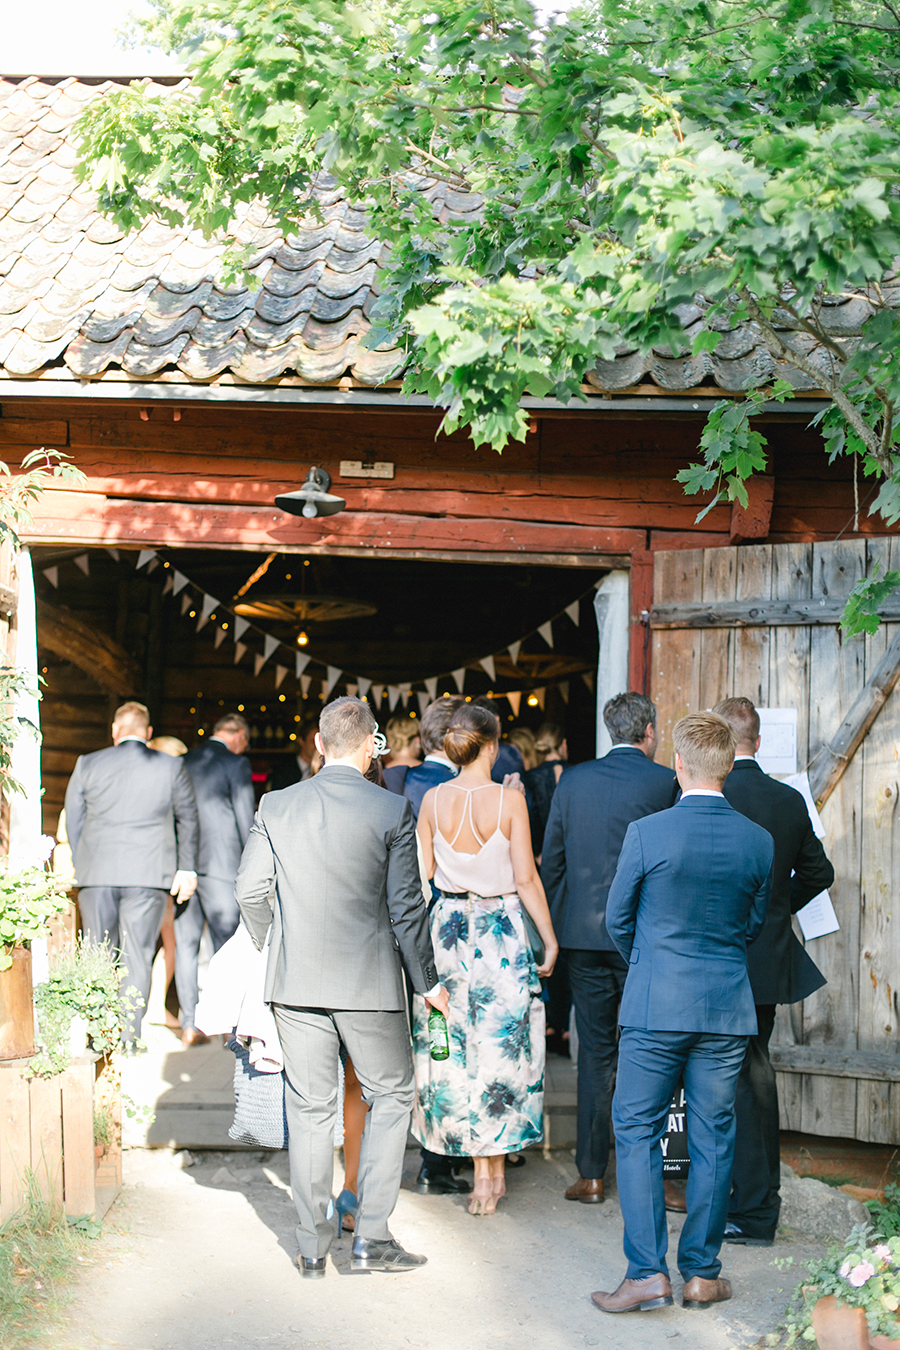 rebeccahansson.com-wedding-Elin-and-Peder-august-13th-2016-(673).jpg